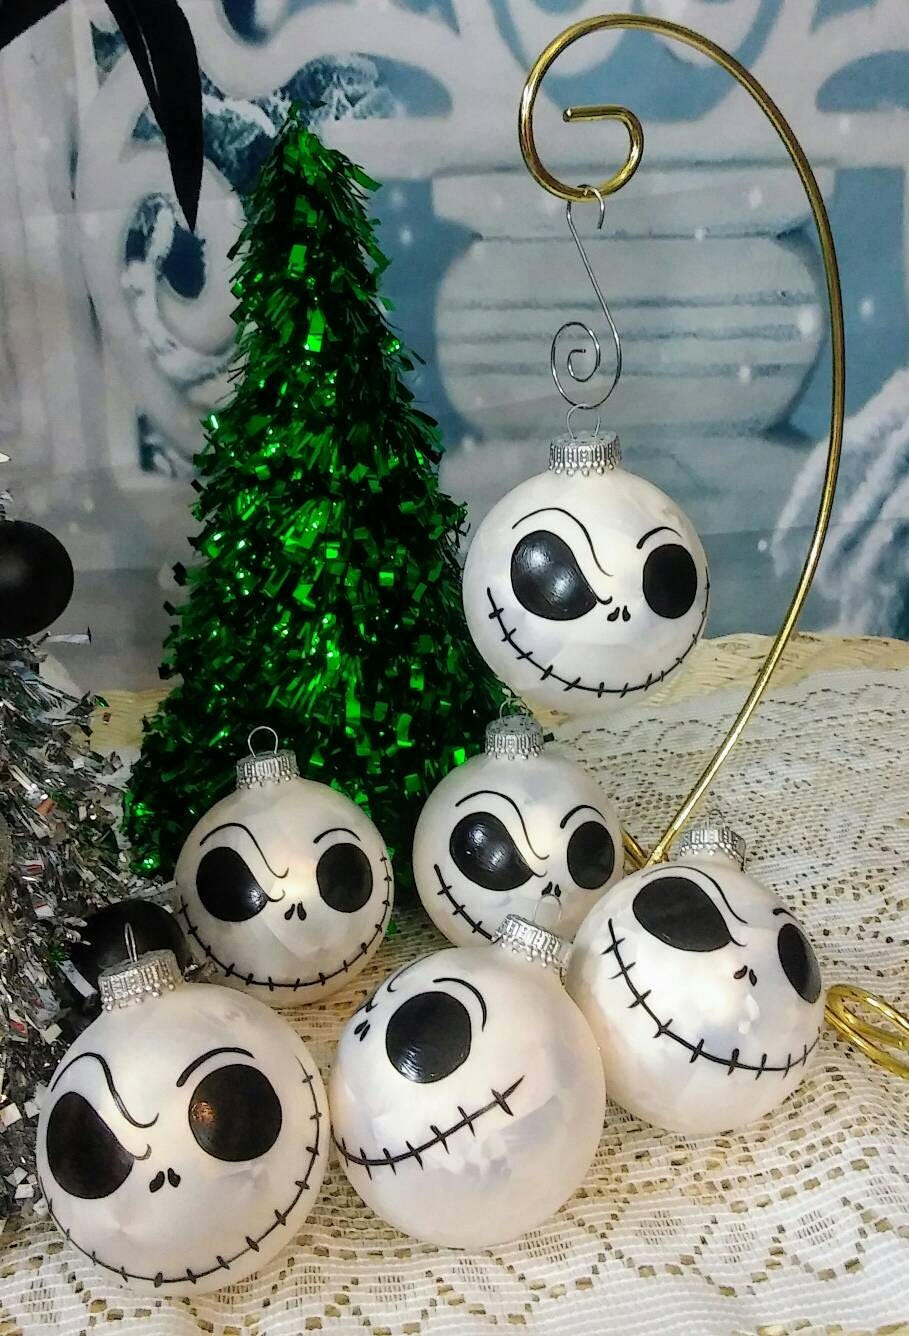 6 Nightmare before Christmas tree ornaments hand painted | Etsy